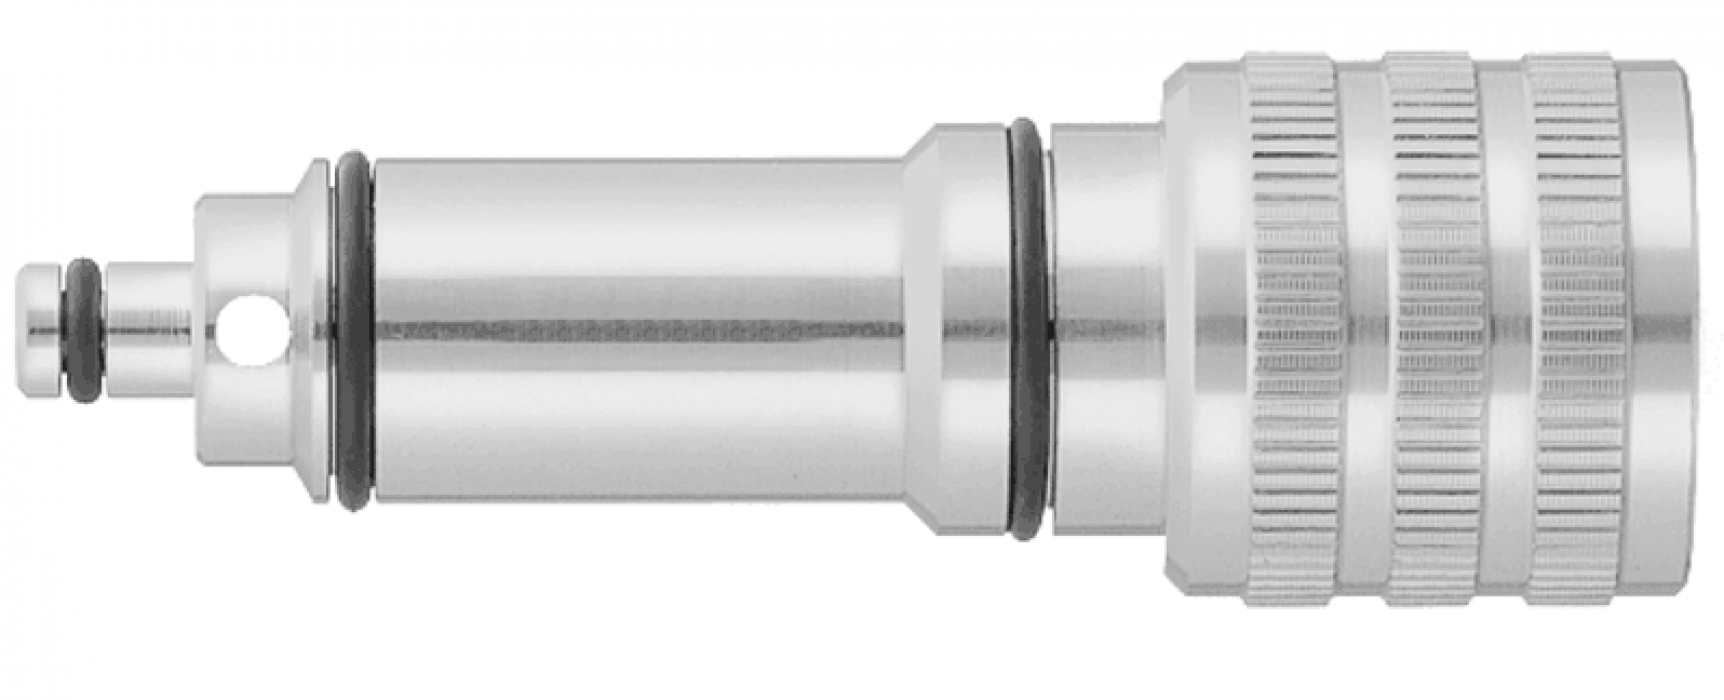 An image of WH Nozzle